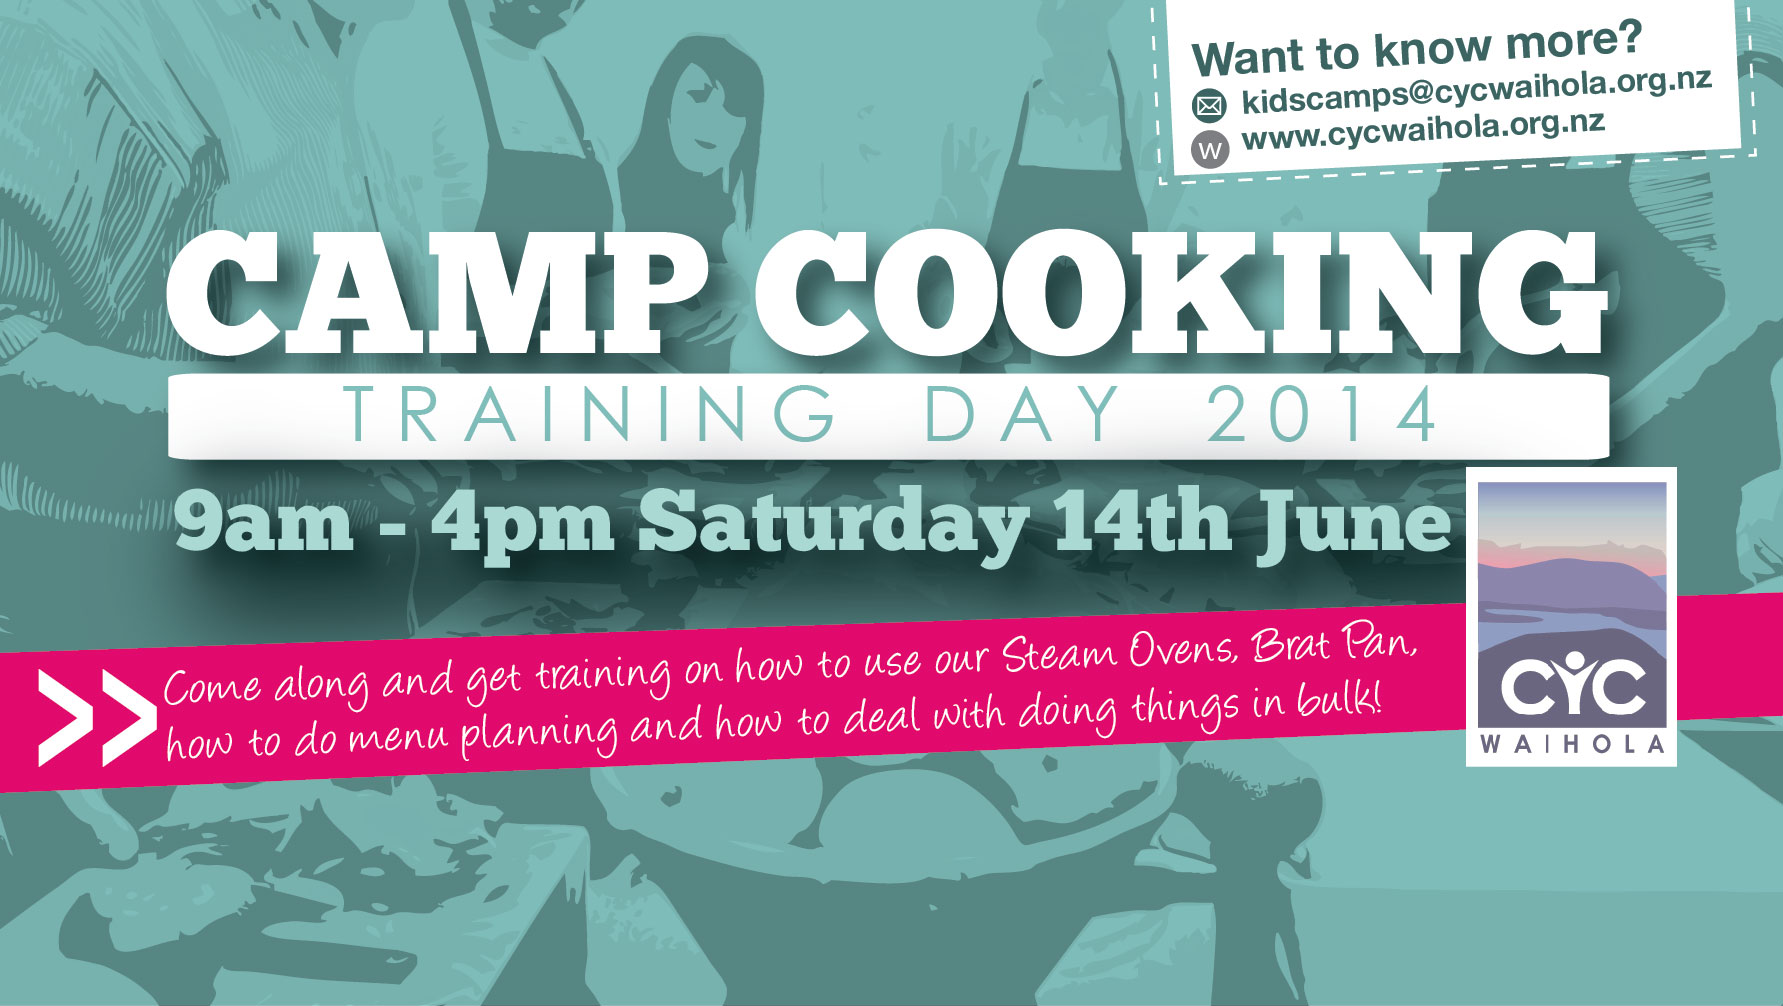 Camp Cooking Training Day